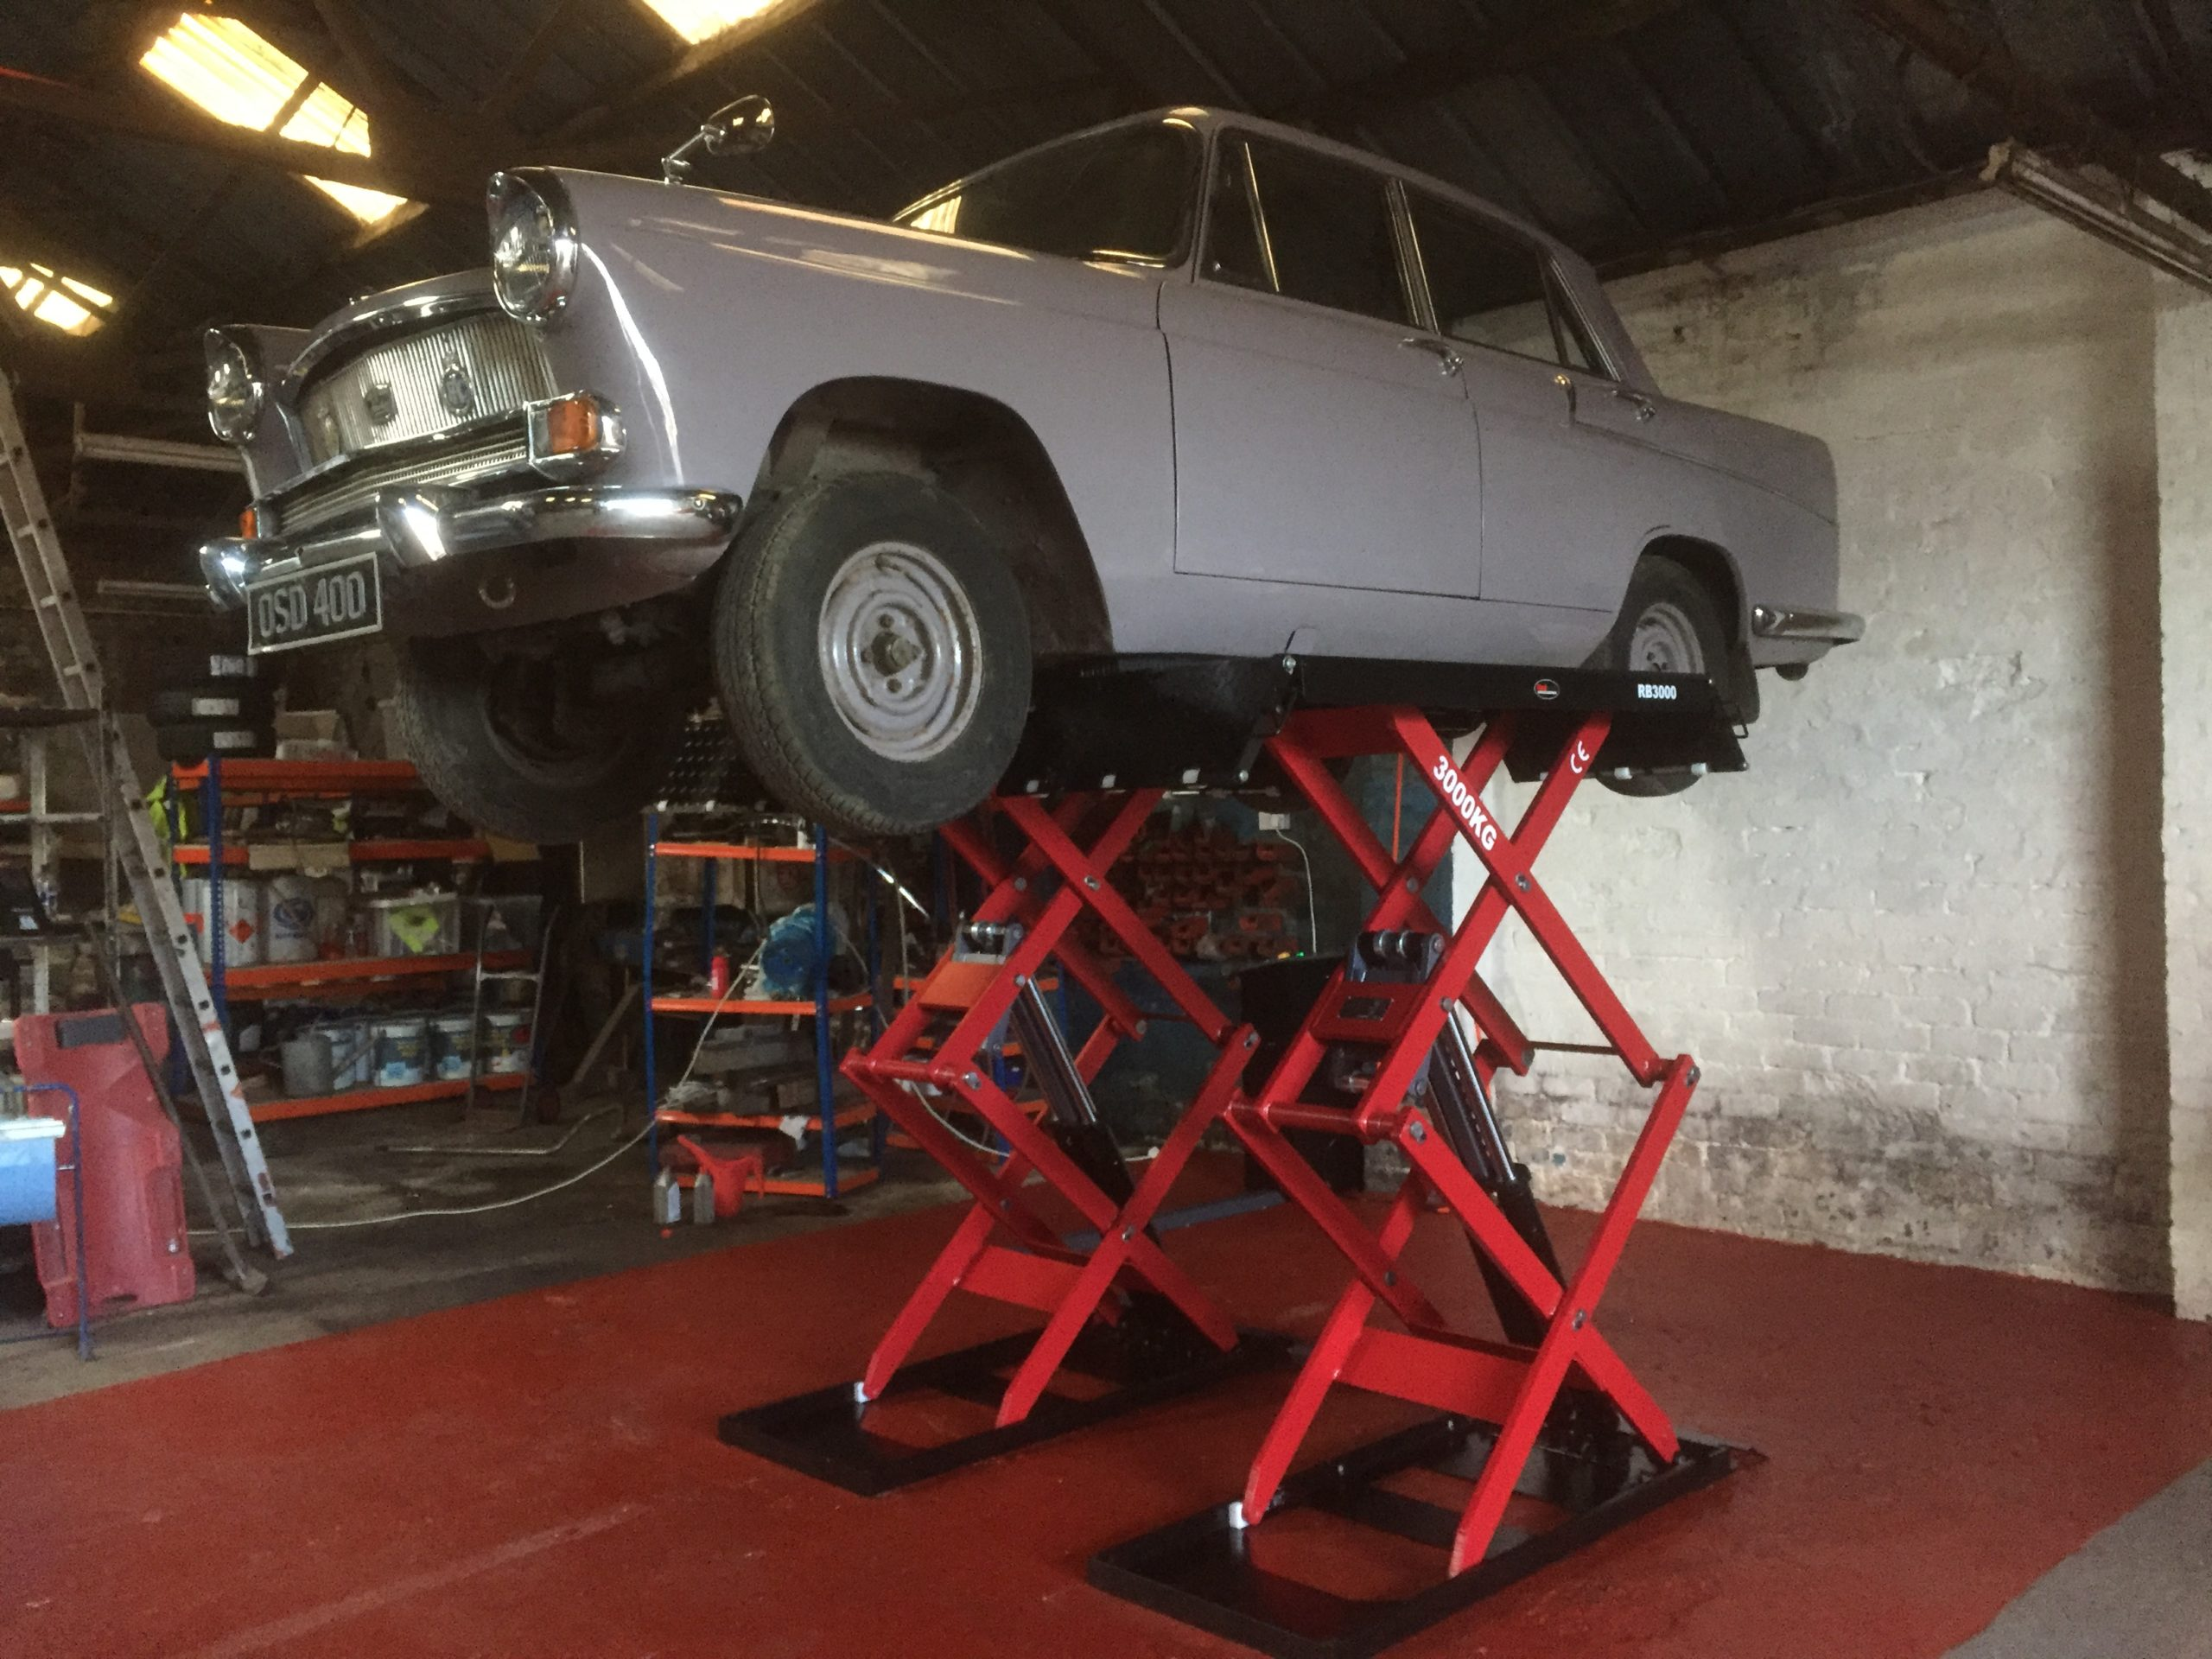 Making full use of the brand new RB3000 Scissor Lift in their own garage, John Gemmel coachworks got straight to work on his own car, carrying out some overdue repairs.